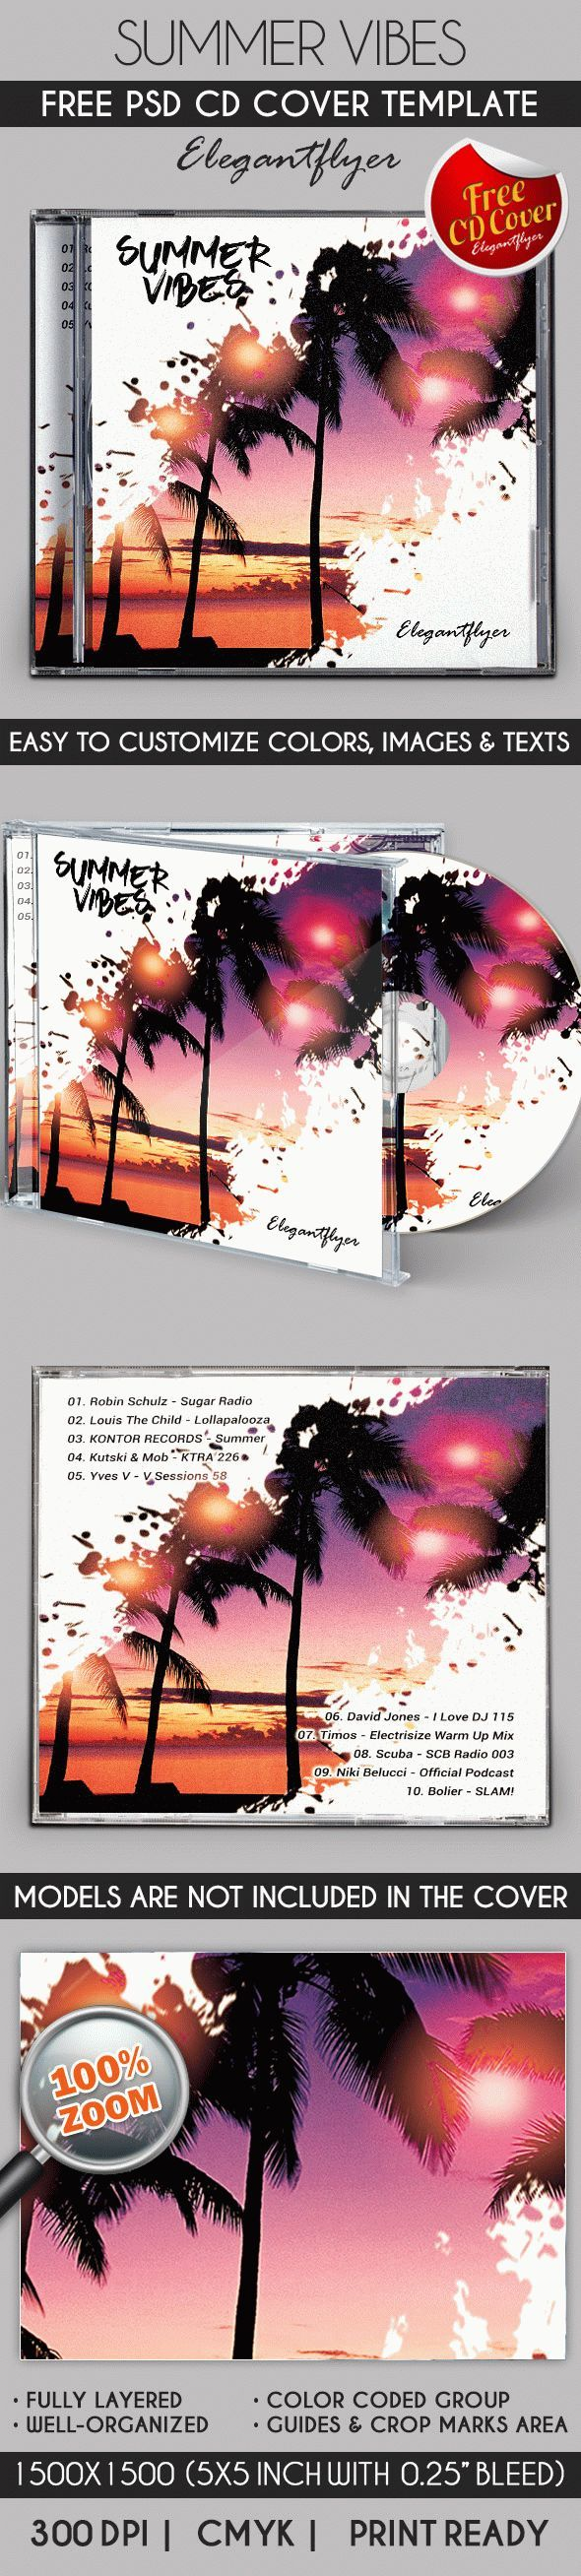 Summer Vibes – Free CD Cover PSD Template